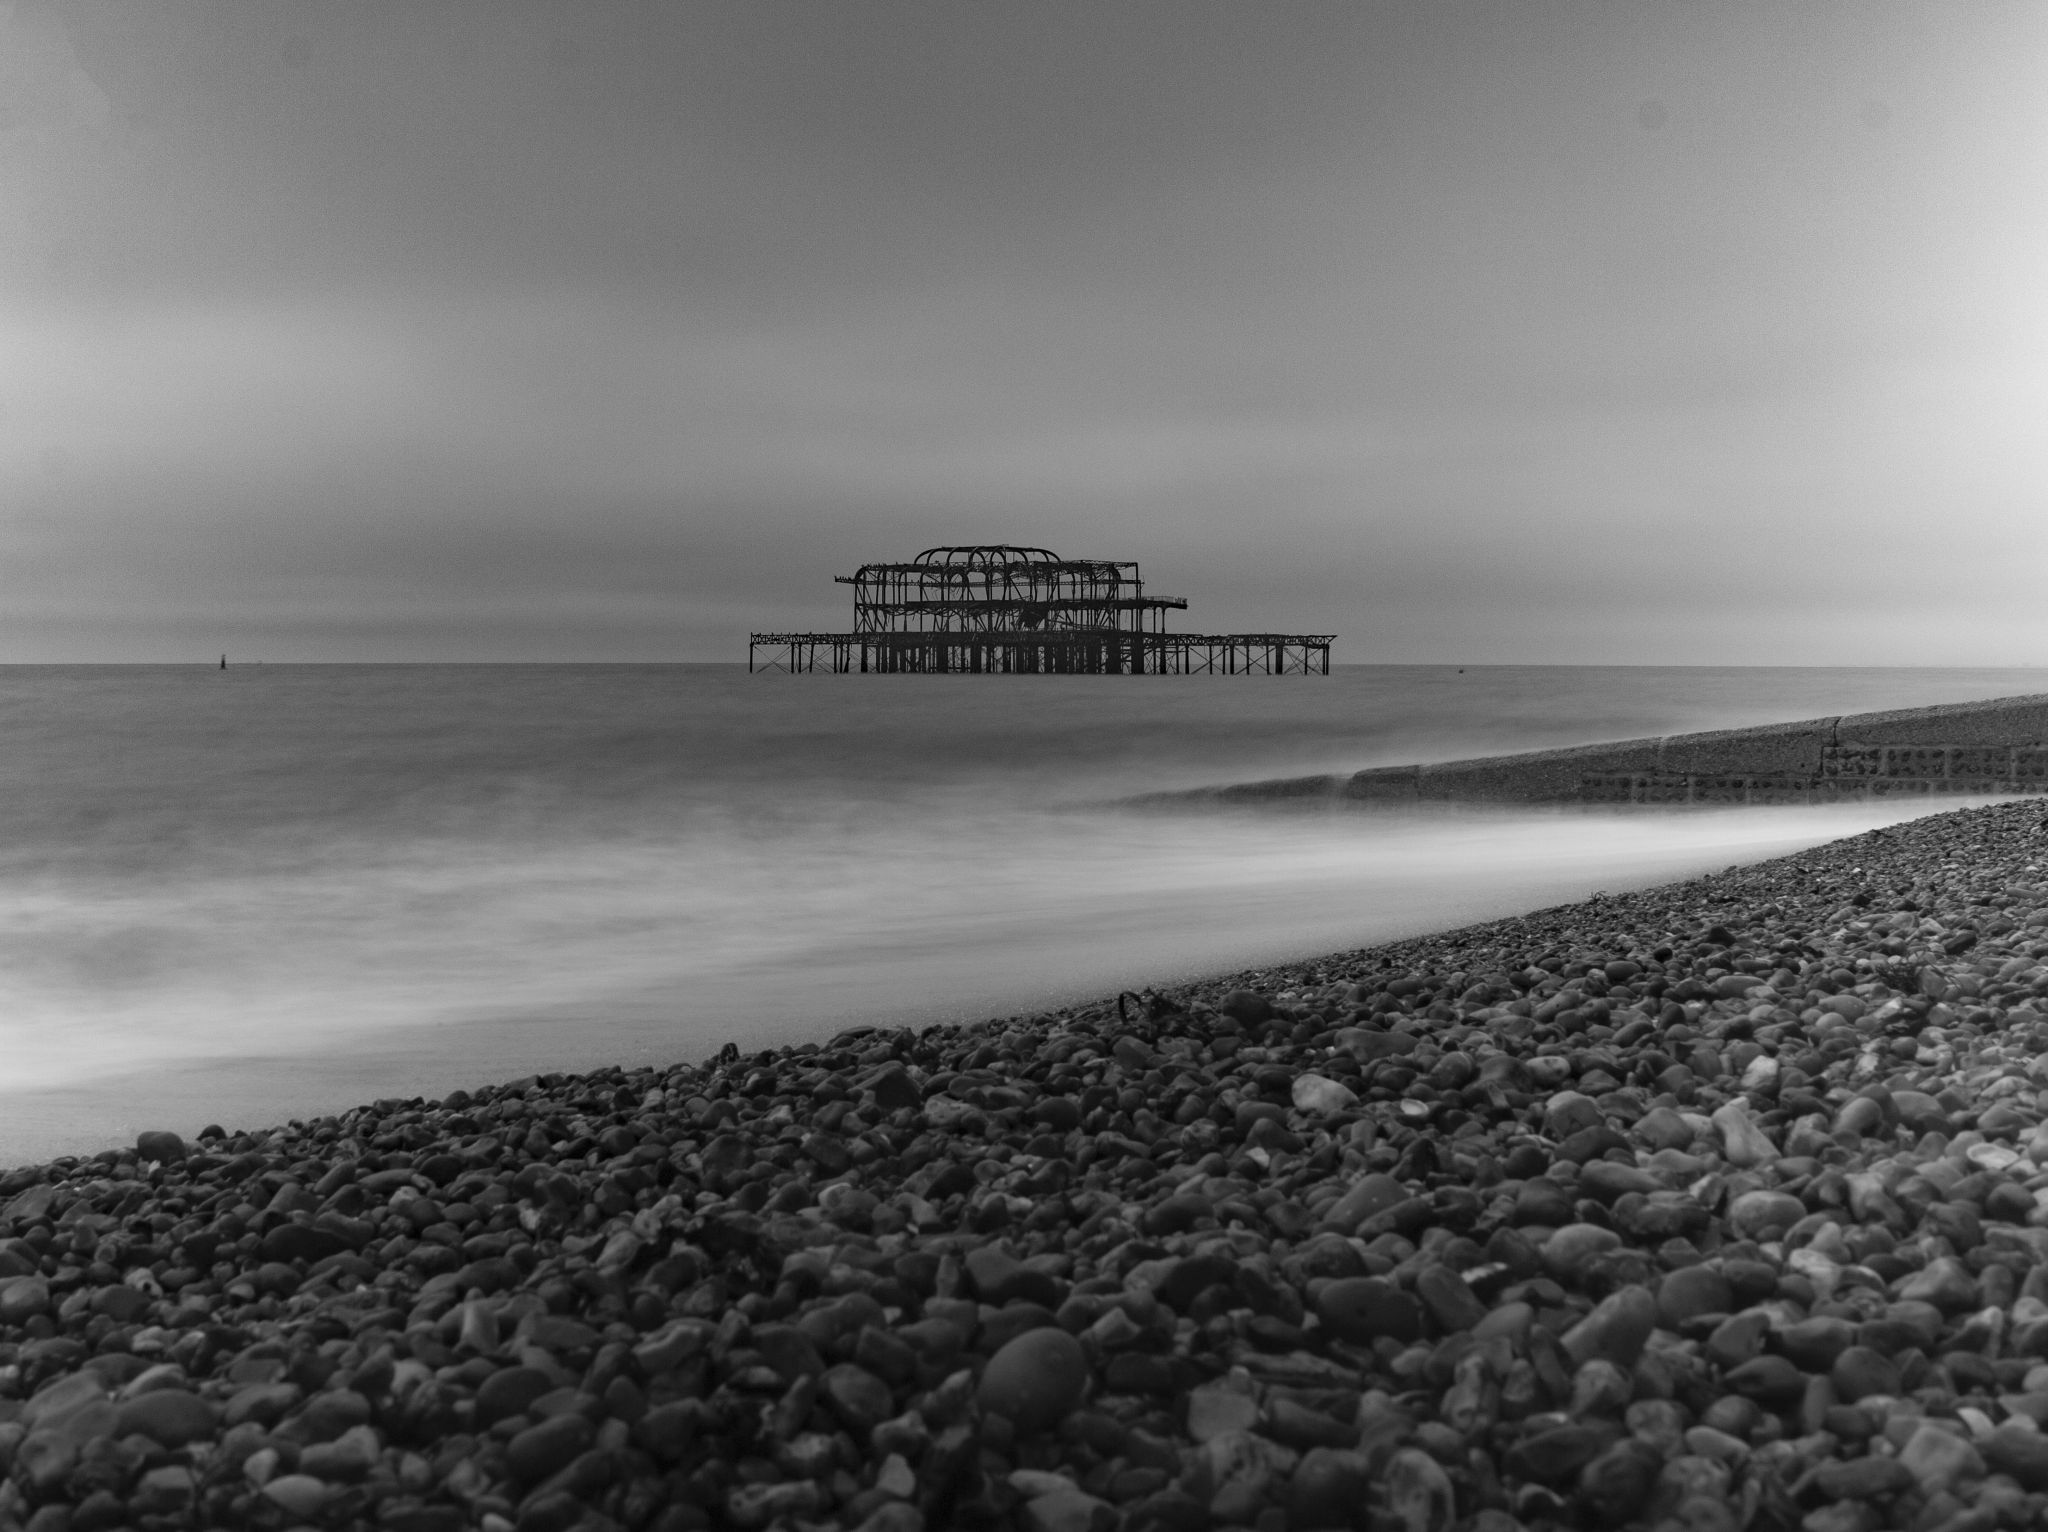 Brighton's West Pier: One photo, two edits